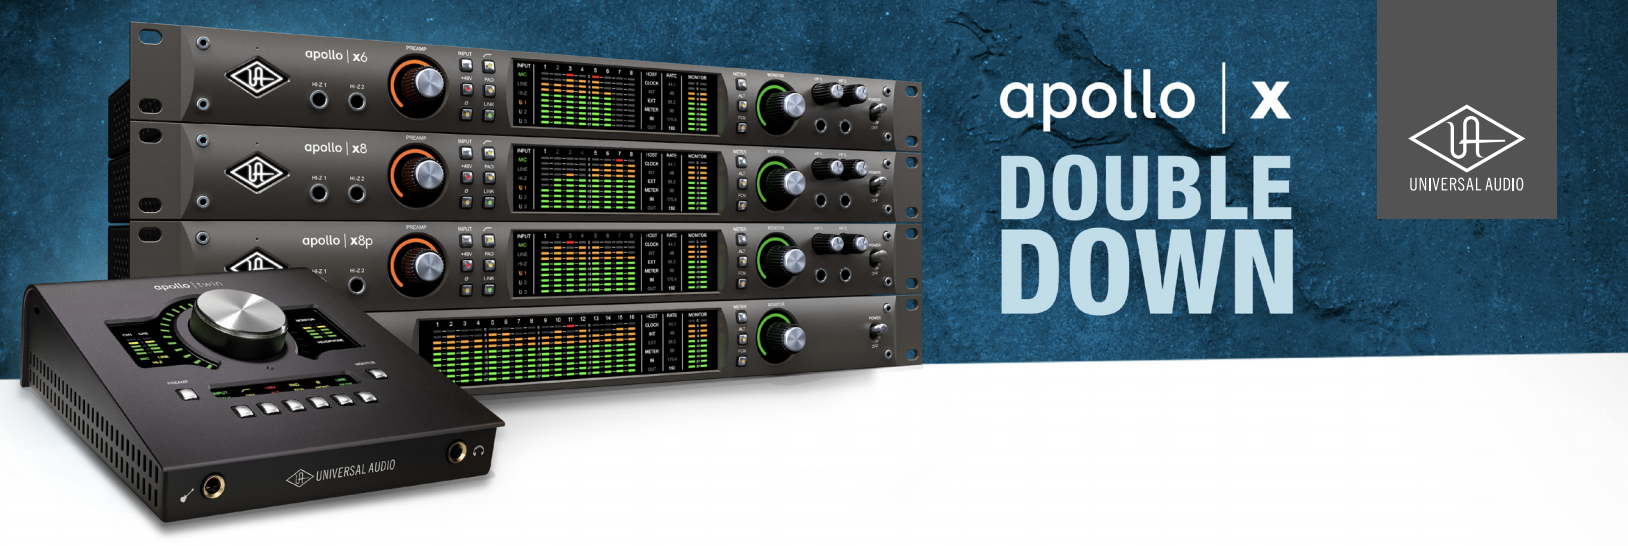 Universal Audio Double Down Program | Pro Audio LA